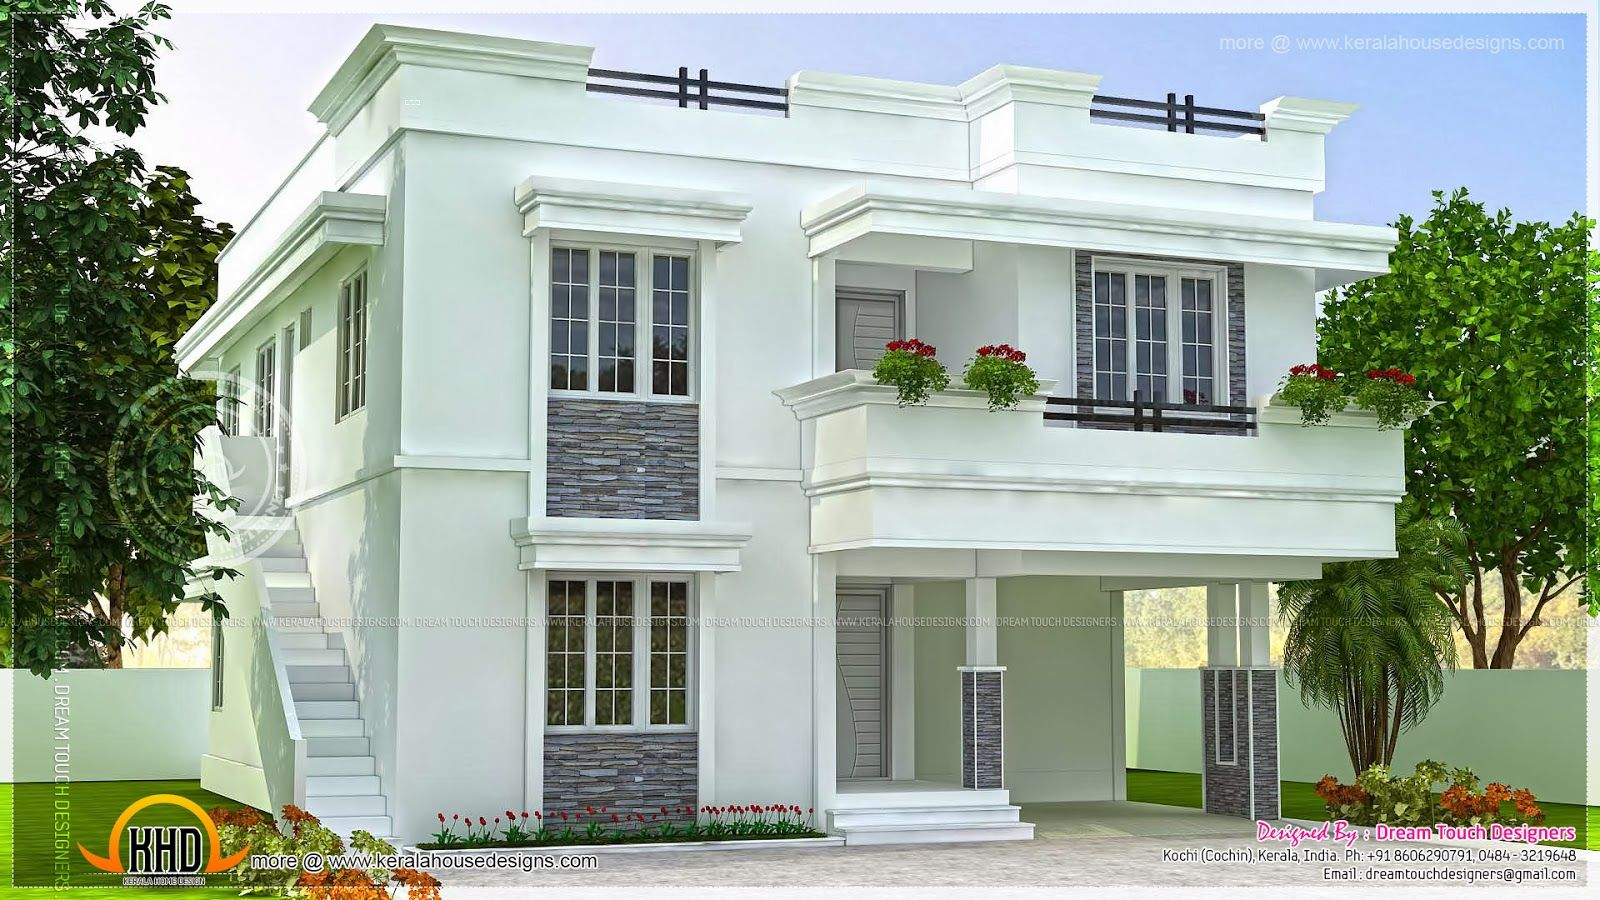 Modern beautiful home modern beautiful home design indian for Home models in tamilnadu pictures